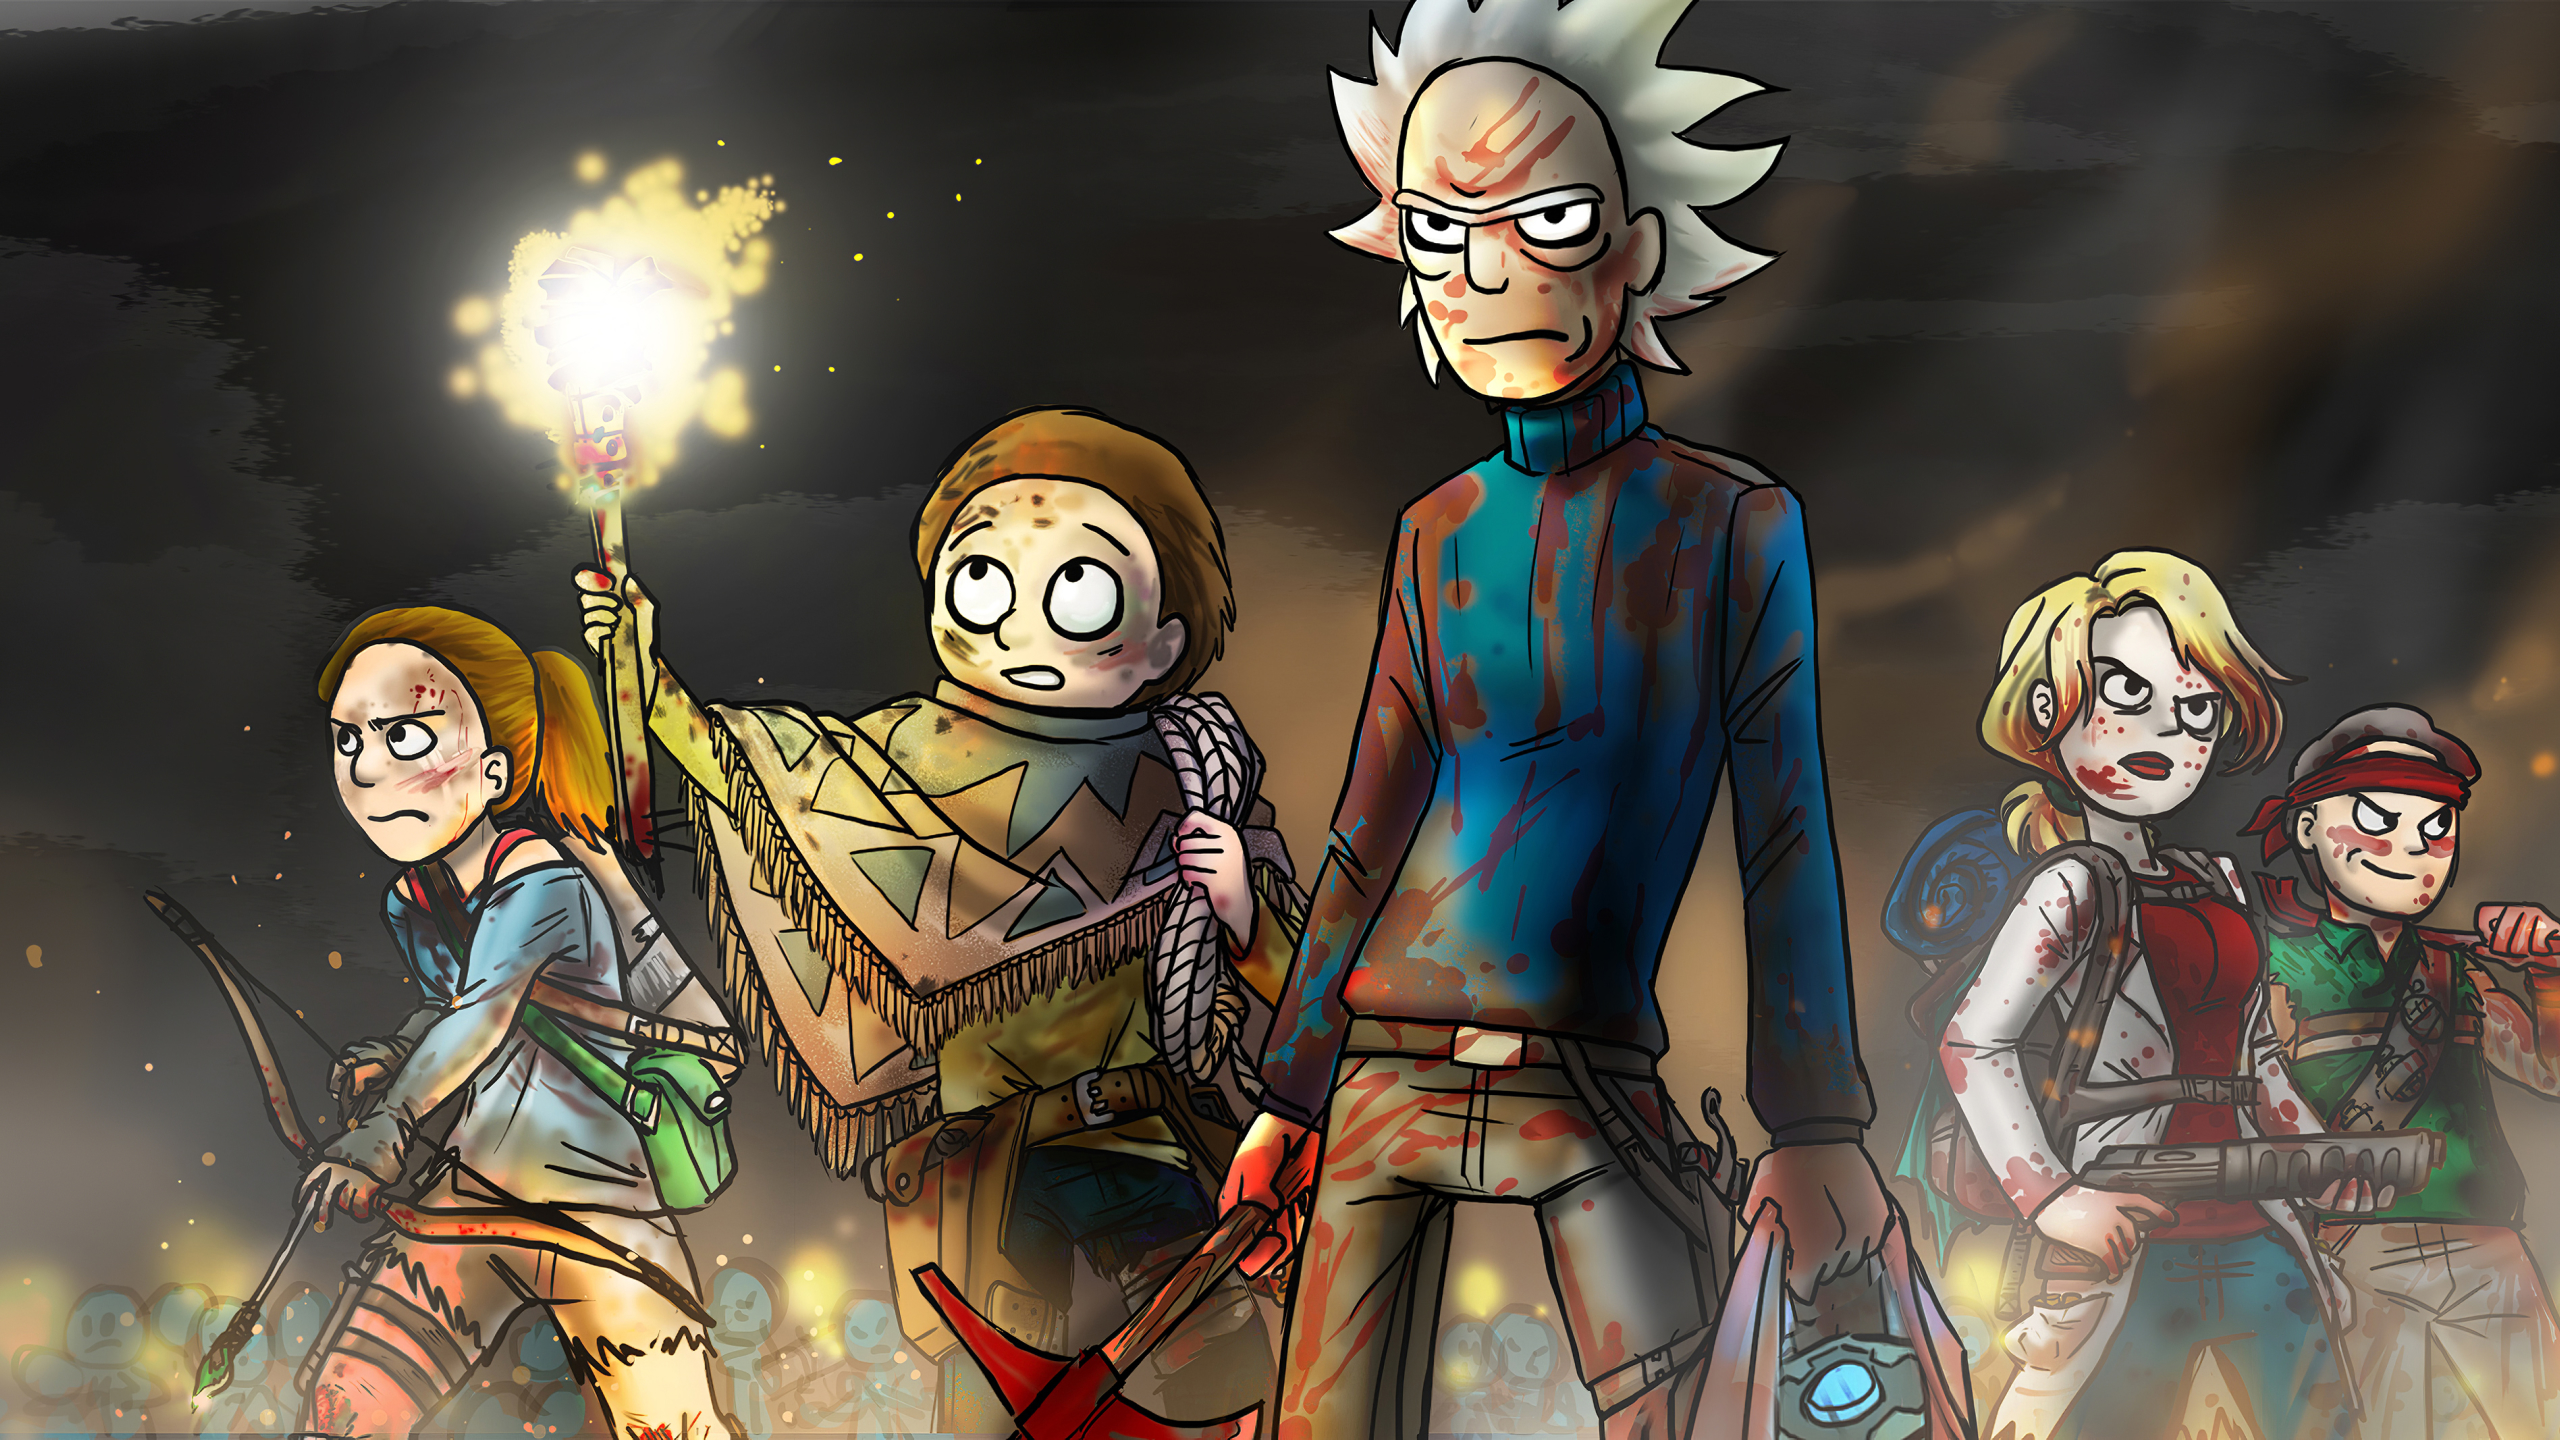 2560x1440 Rick and Morty 2019 Art 1440P Resolution ...